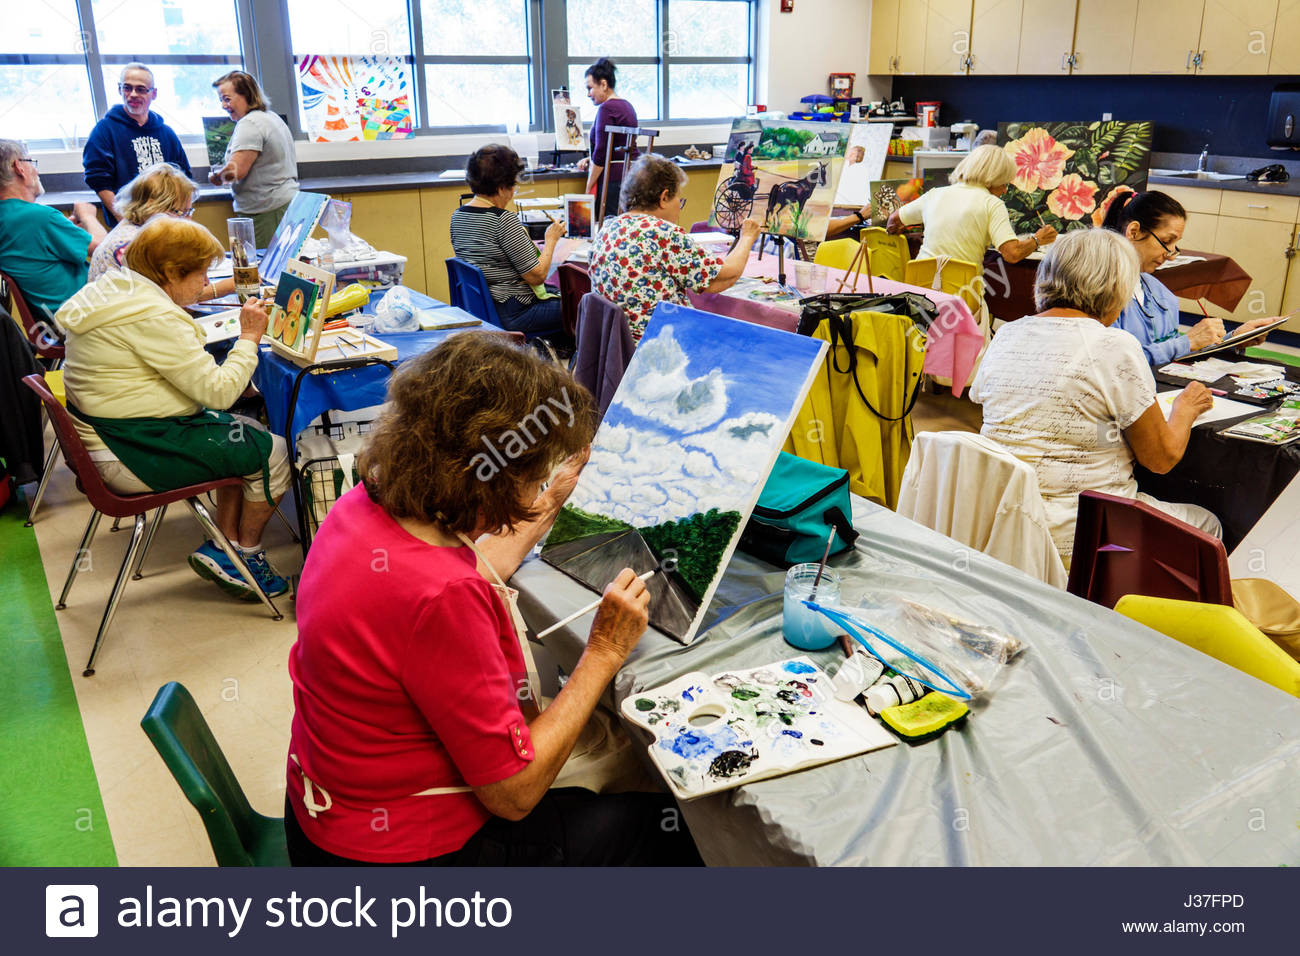 Miami Beach Florida North Shore Community Center senior education older adults seniors art class canvas painting - Stock Image